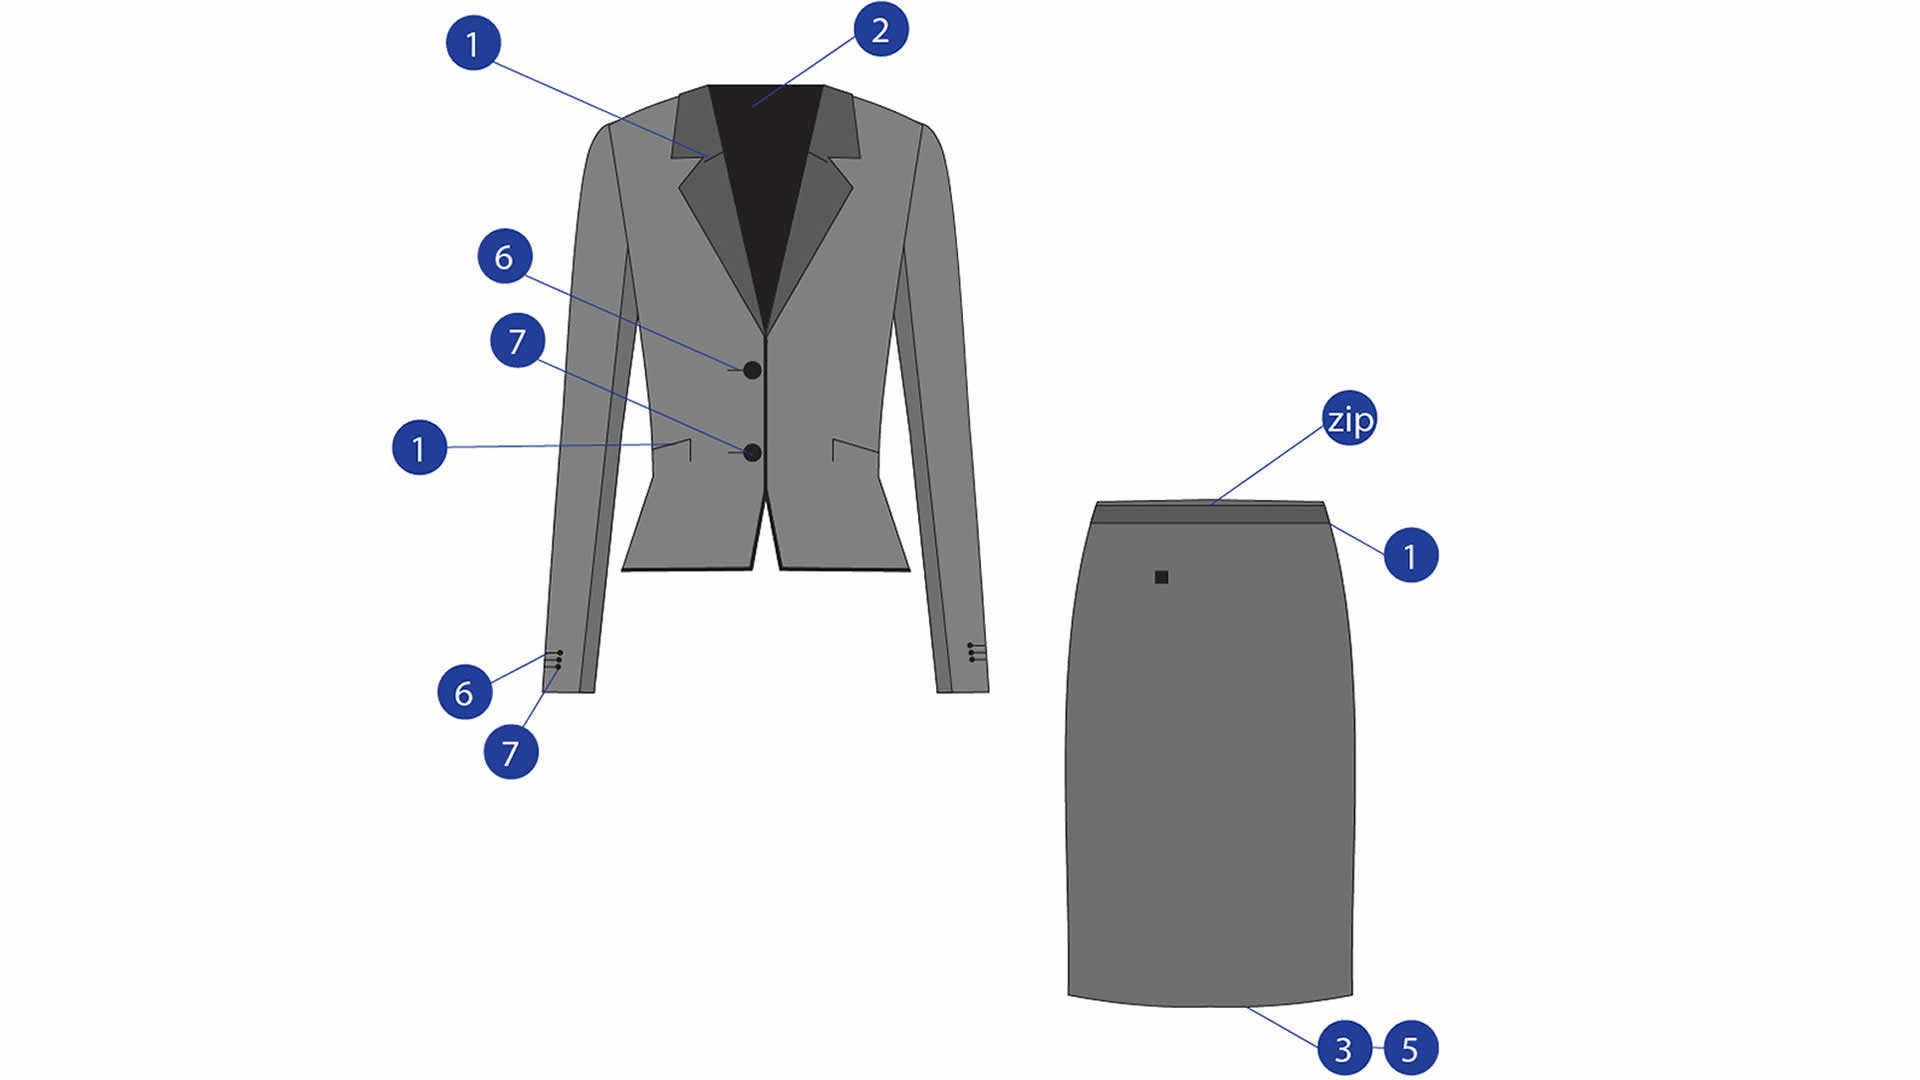 Ladieswear Suits diagram